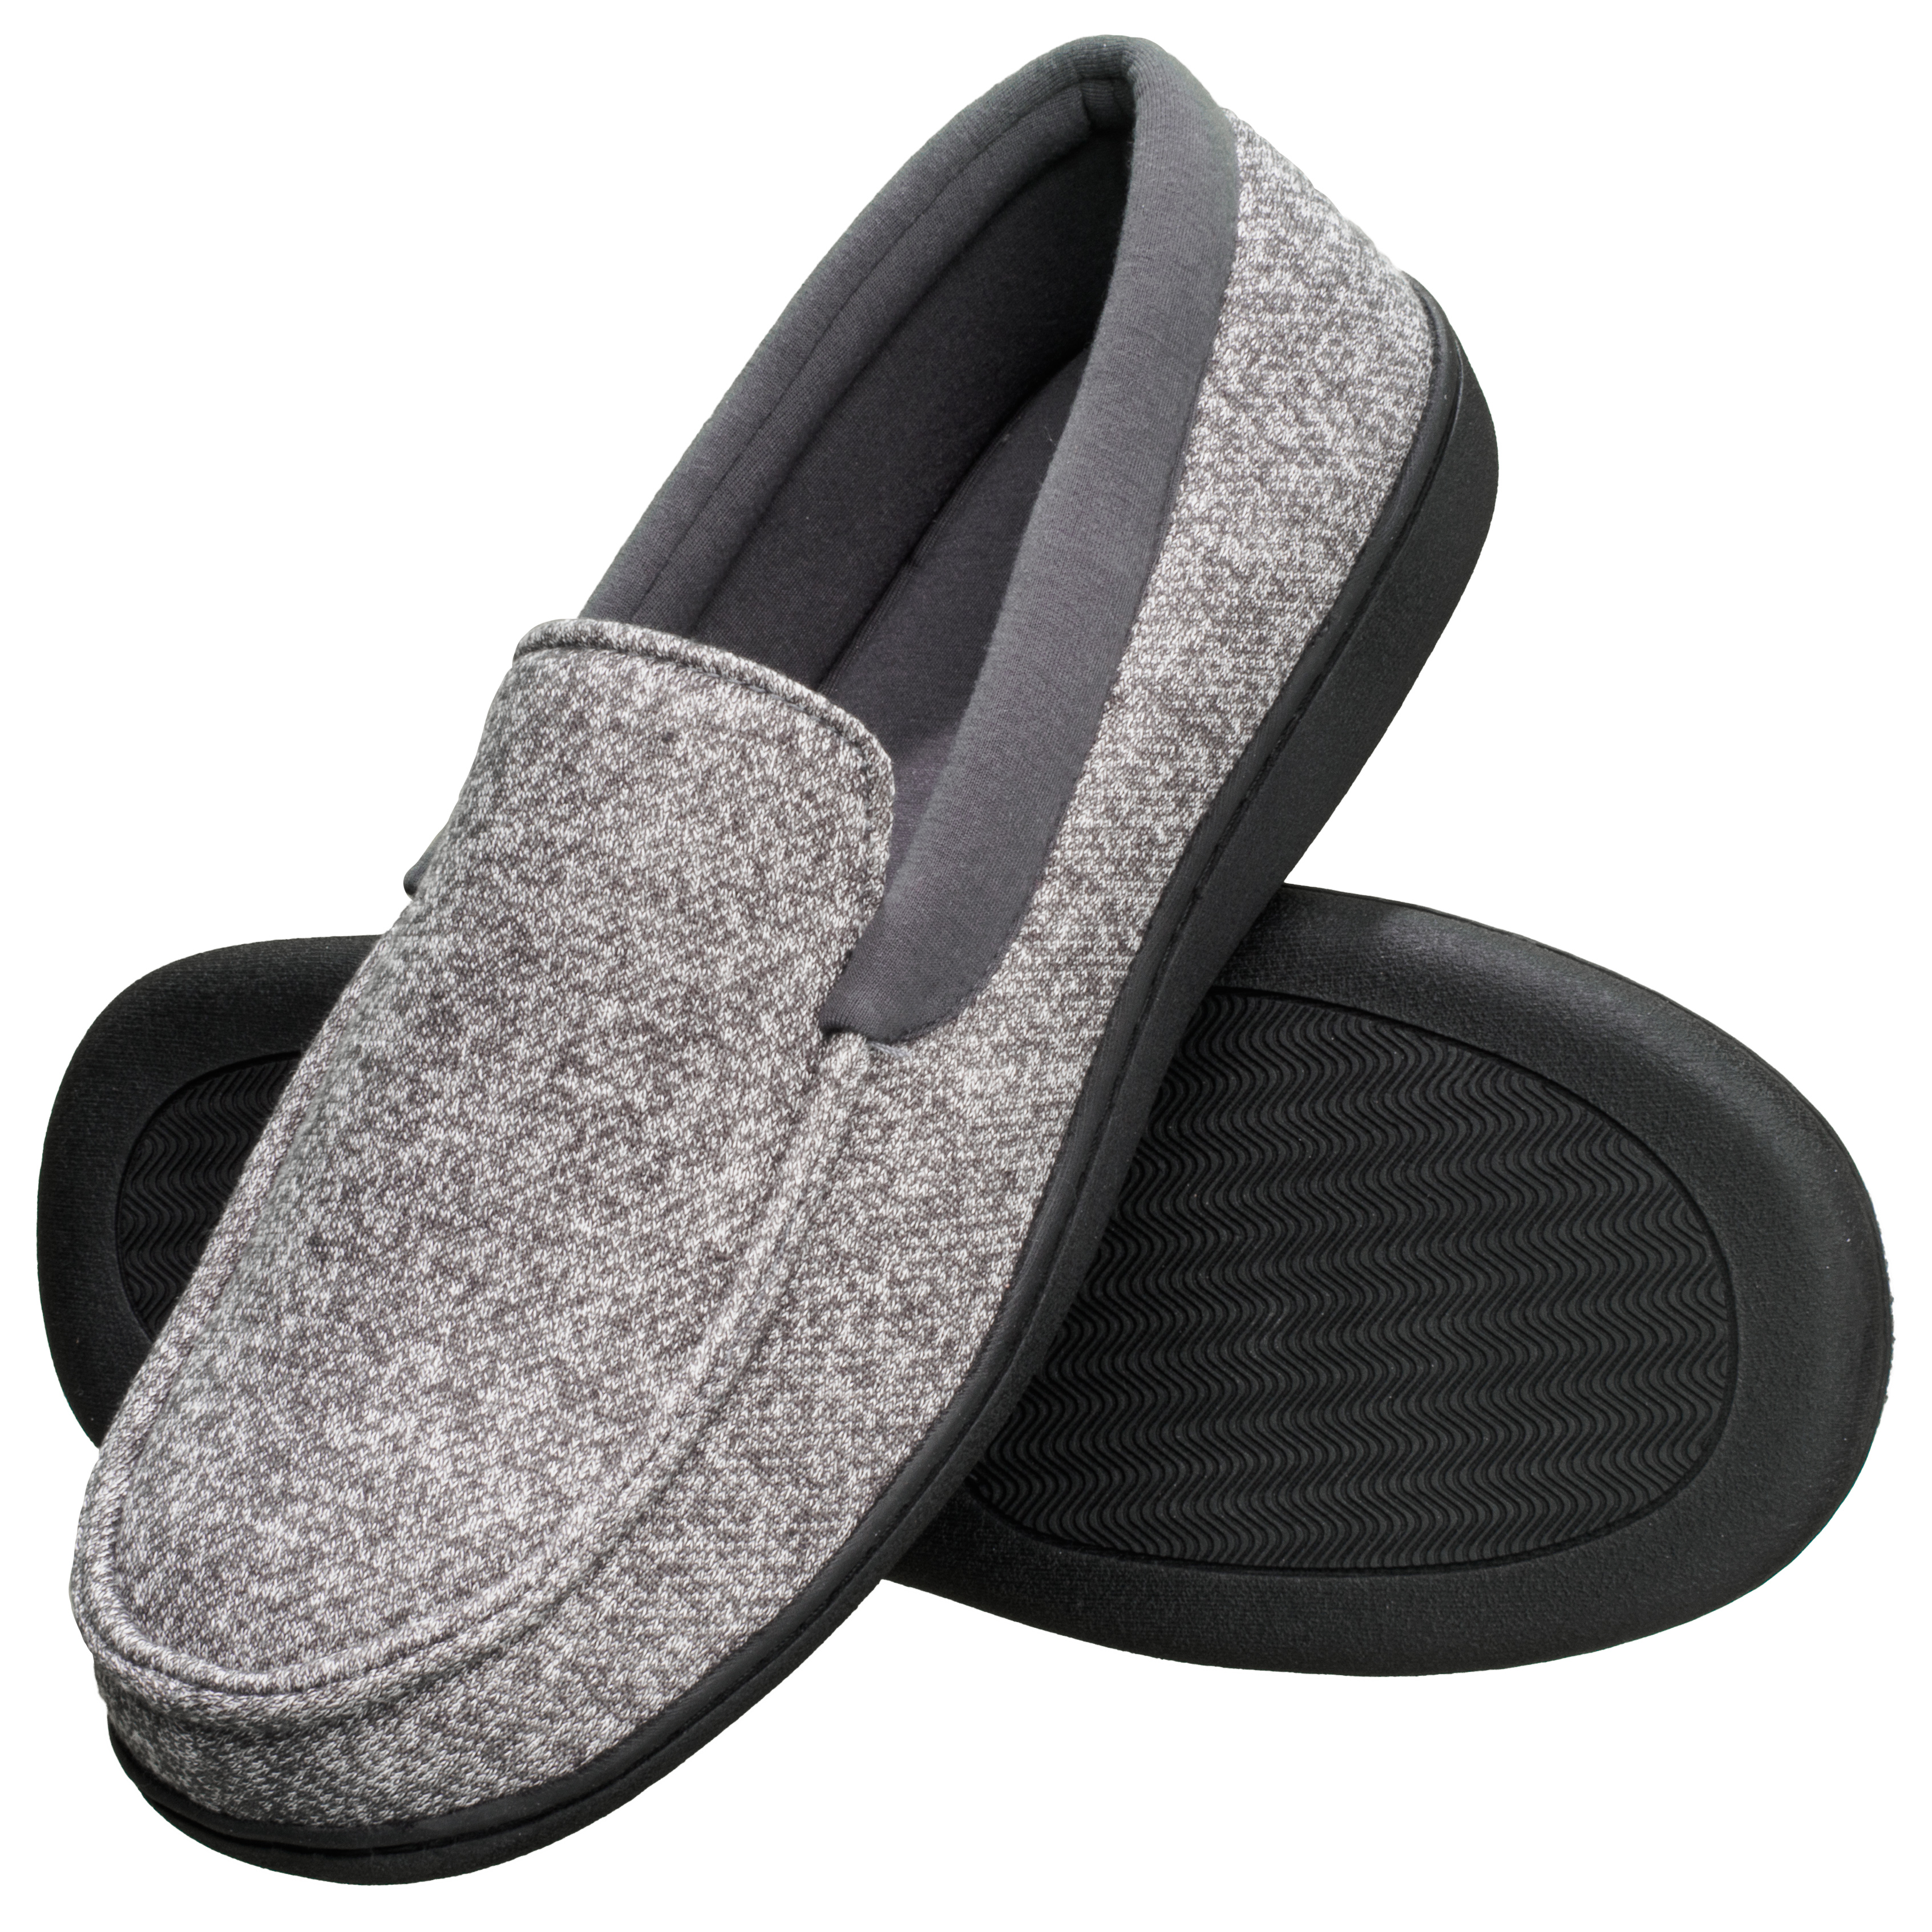 Mens Slippers House Shoes Black Corduroy Moccasin Slip On Indoor Outdoor Comfort